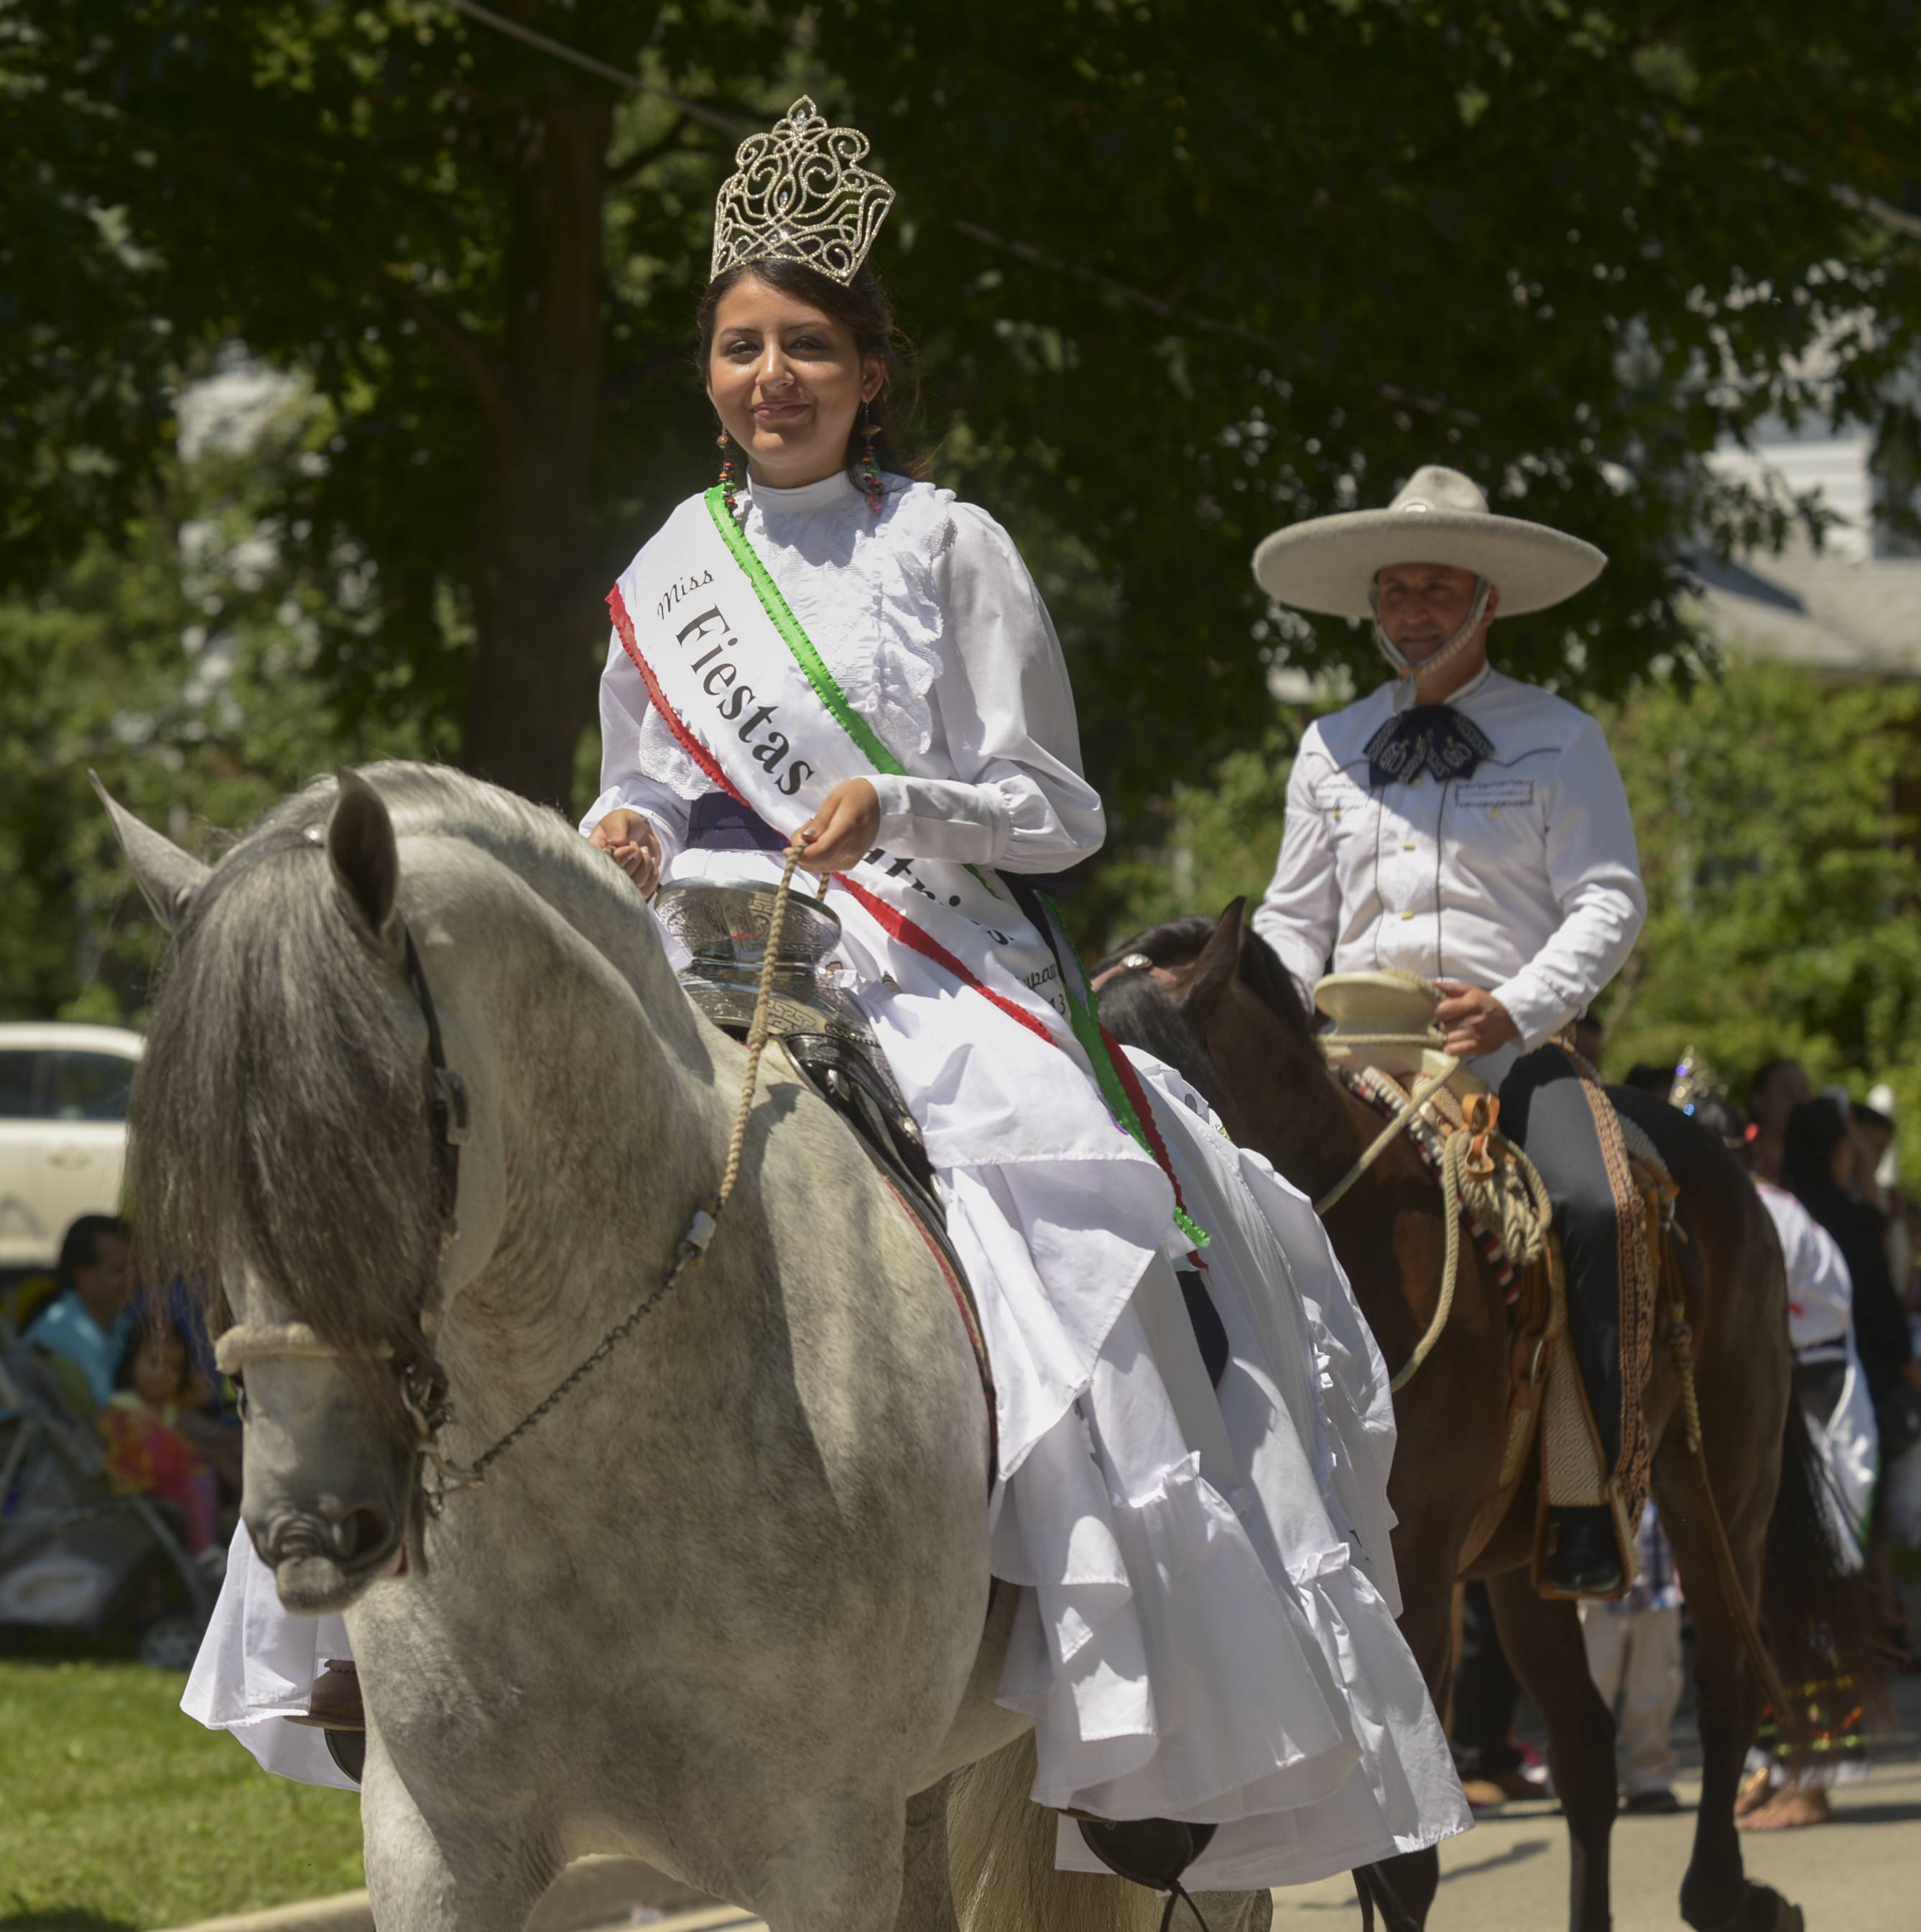 Angelica Gallegos, Miss Fiesta Patrias 2013, rode a horse Sunday in West Chicago's annual Railroad Days Parade.